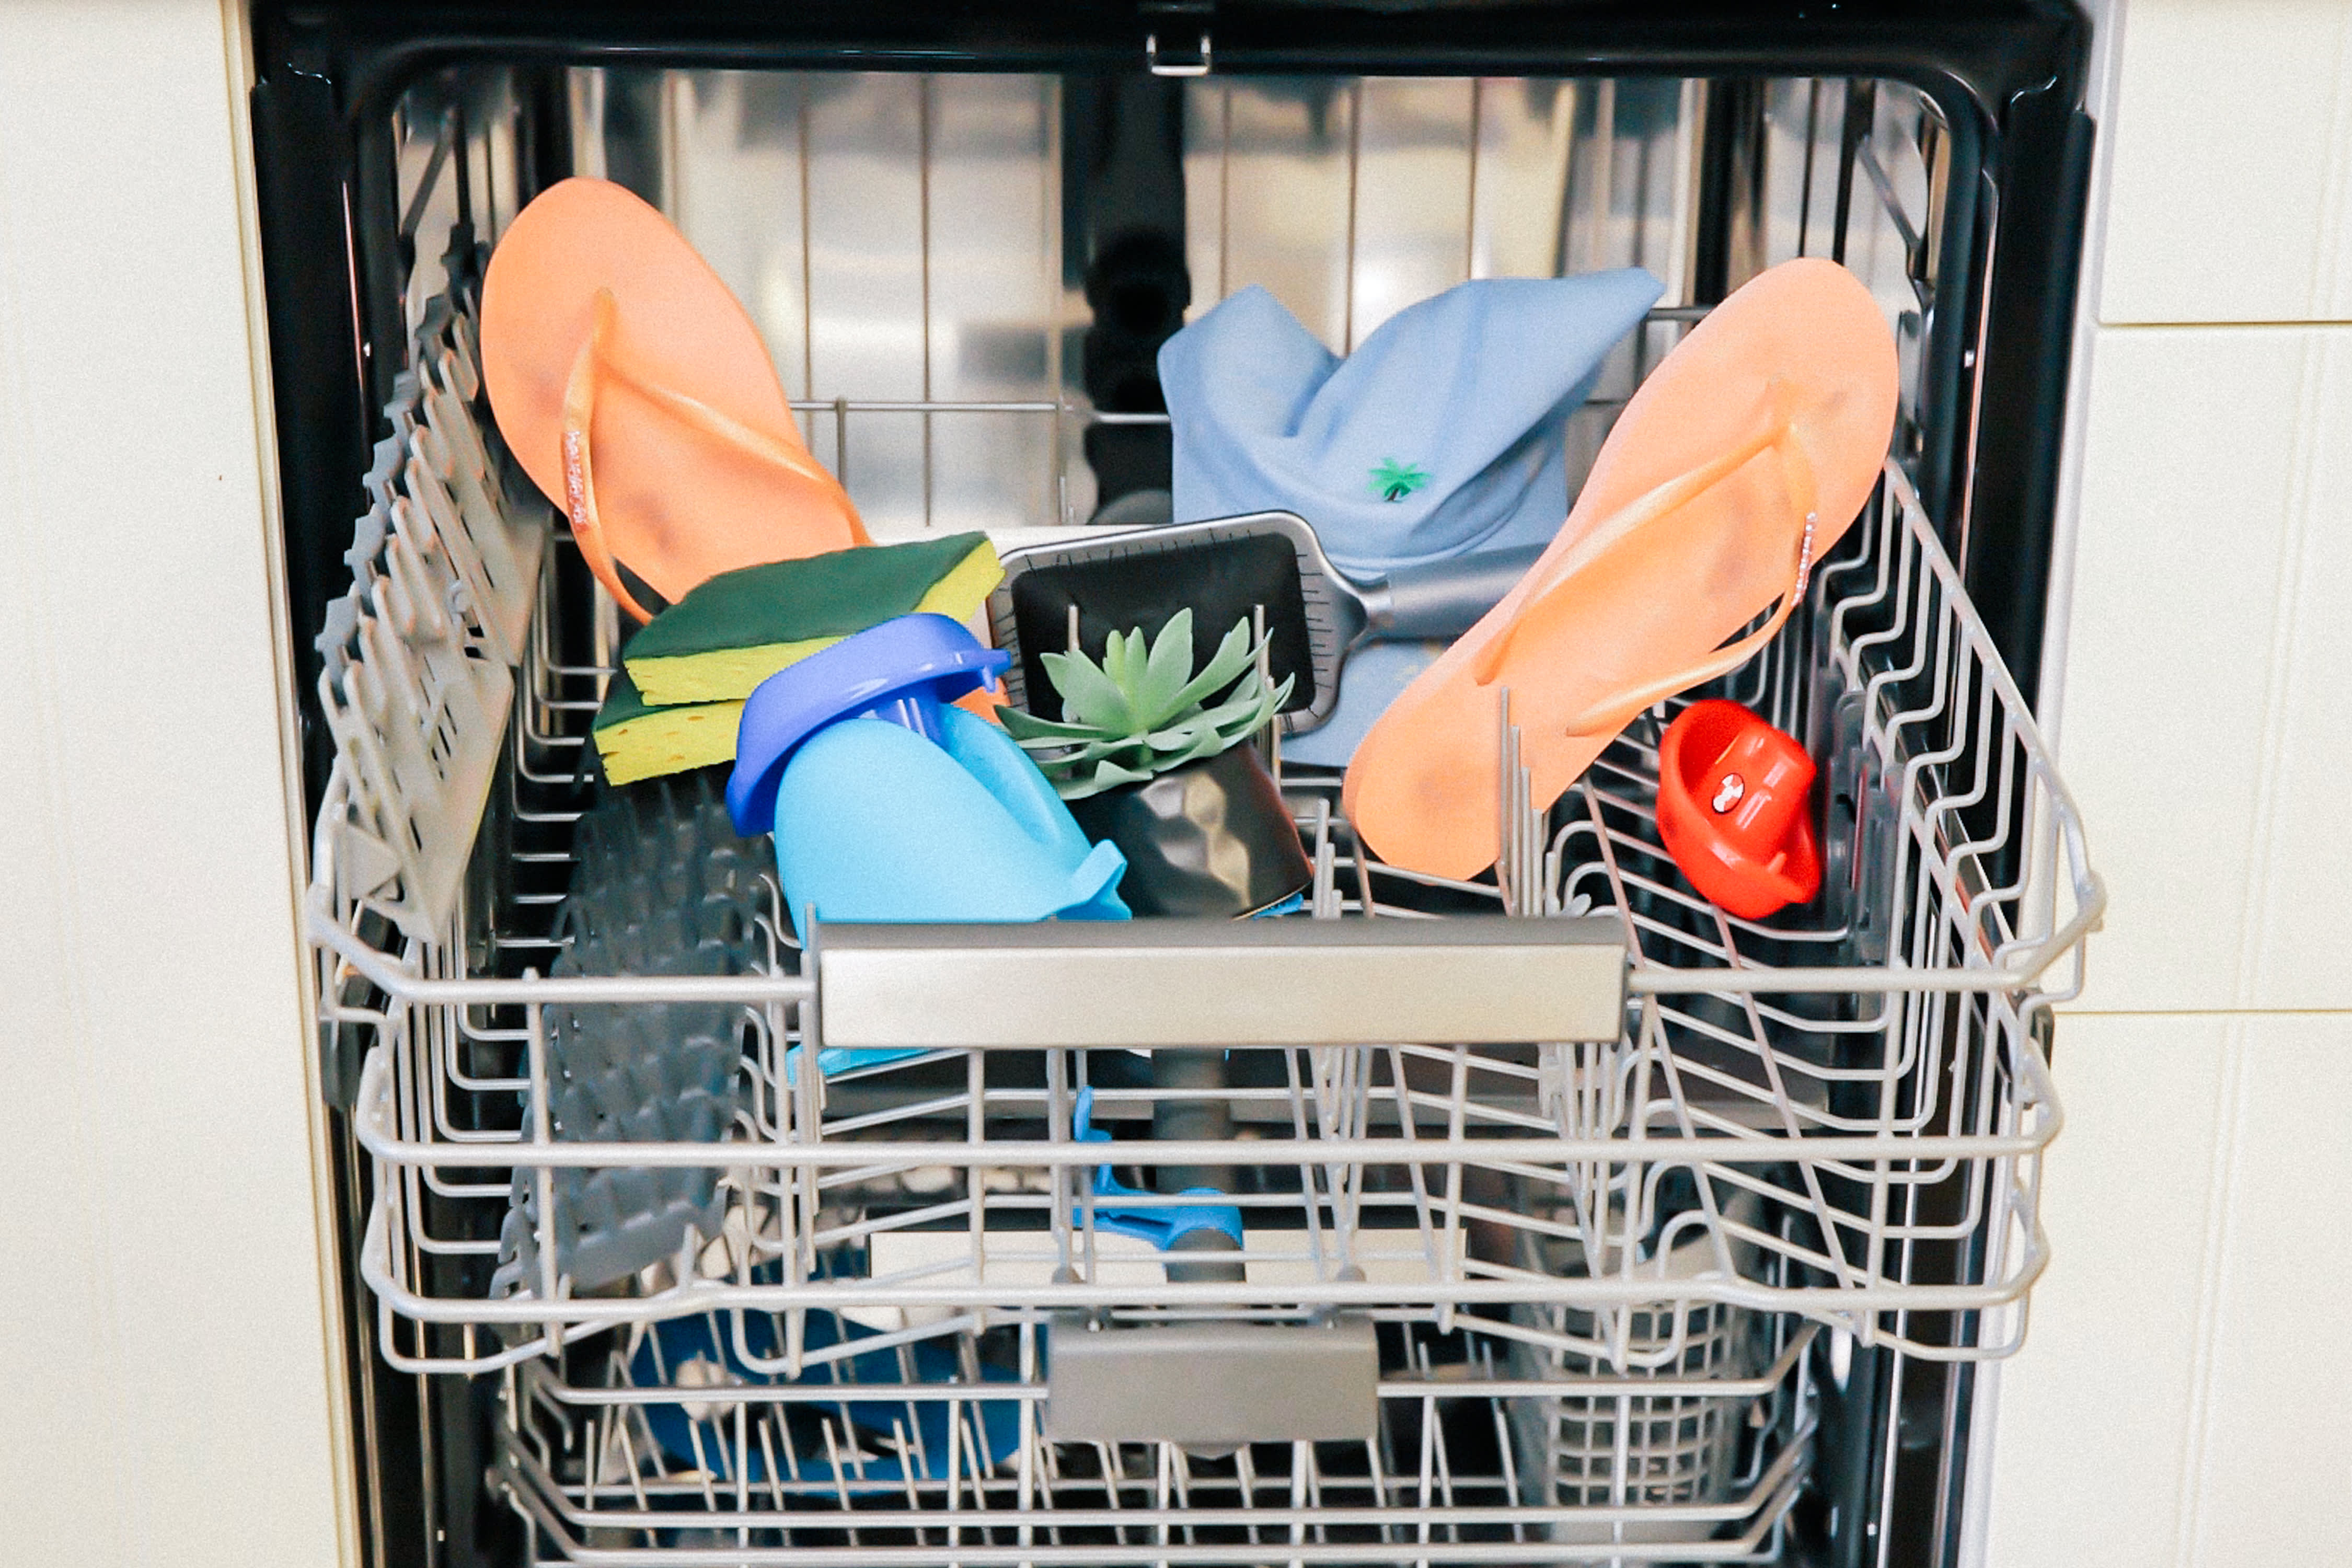 What to clean in the dishwasher